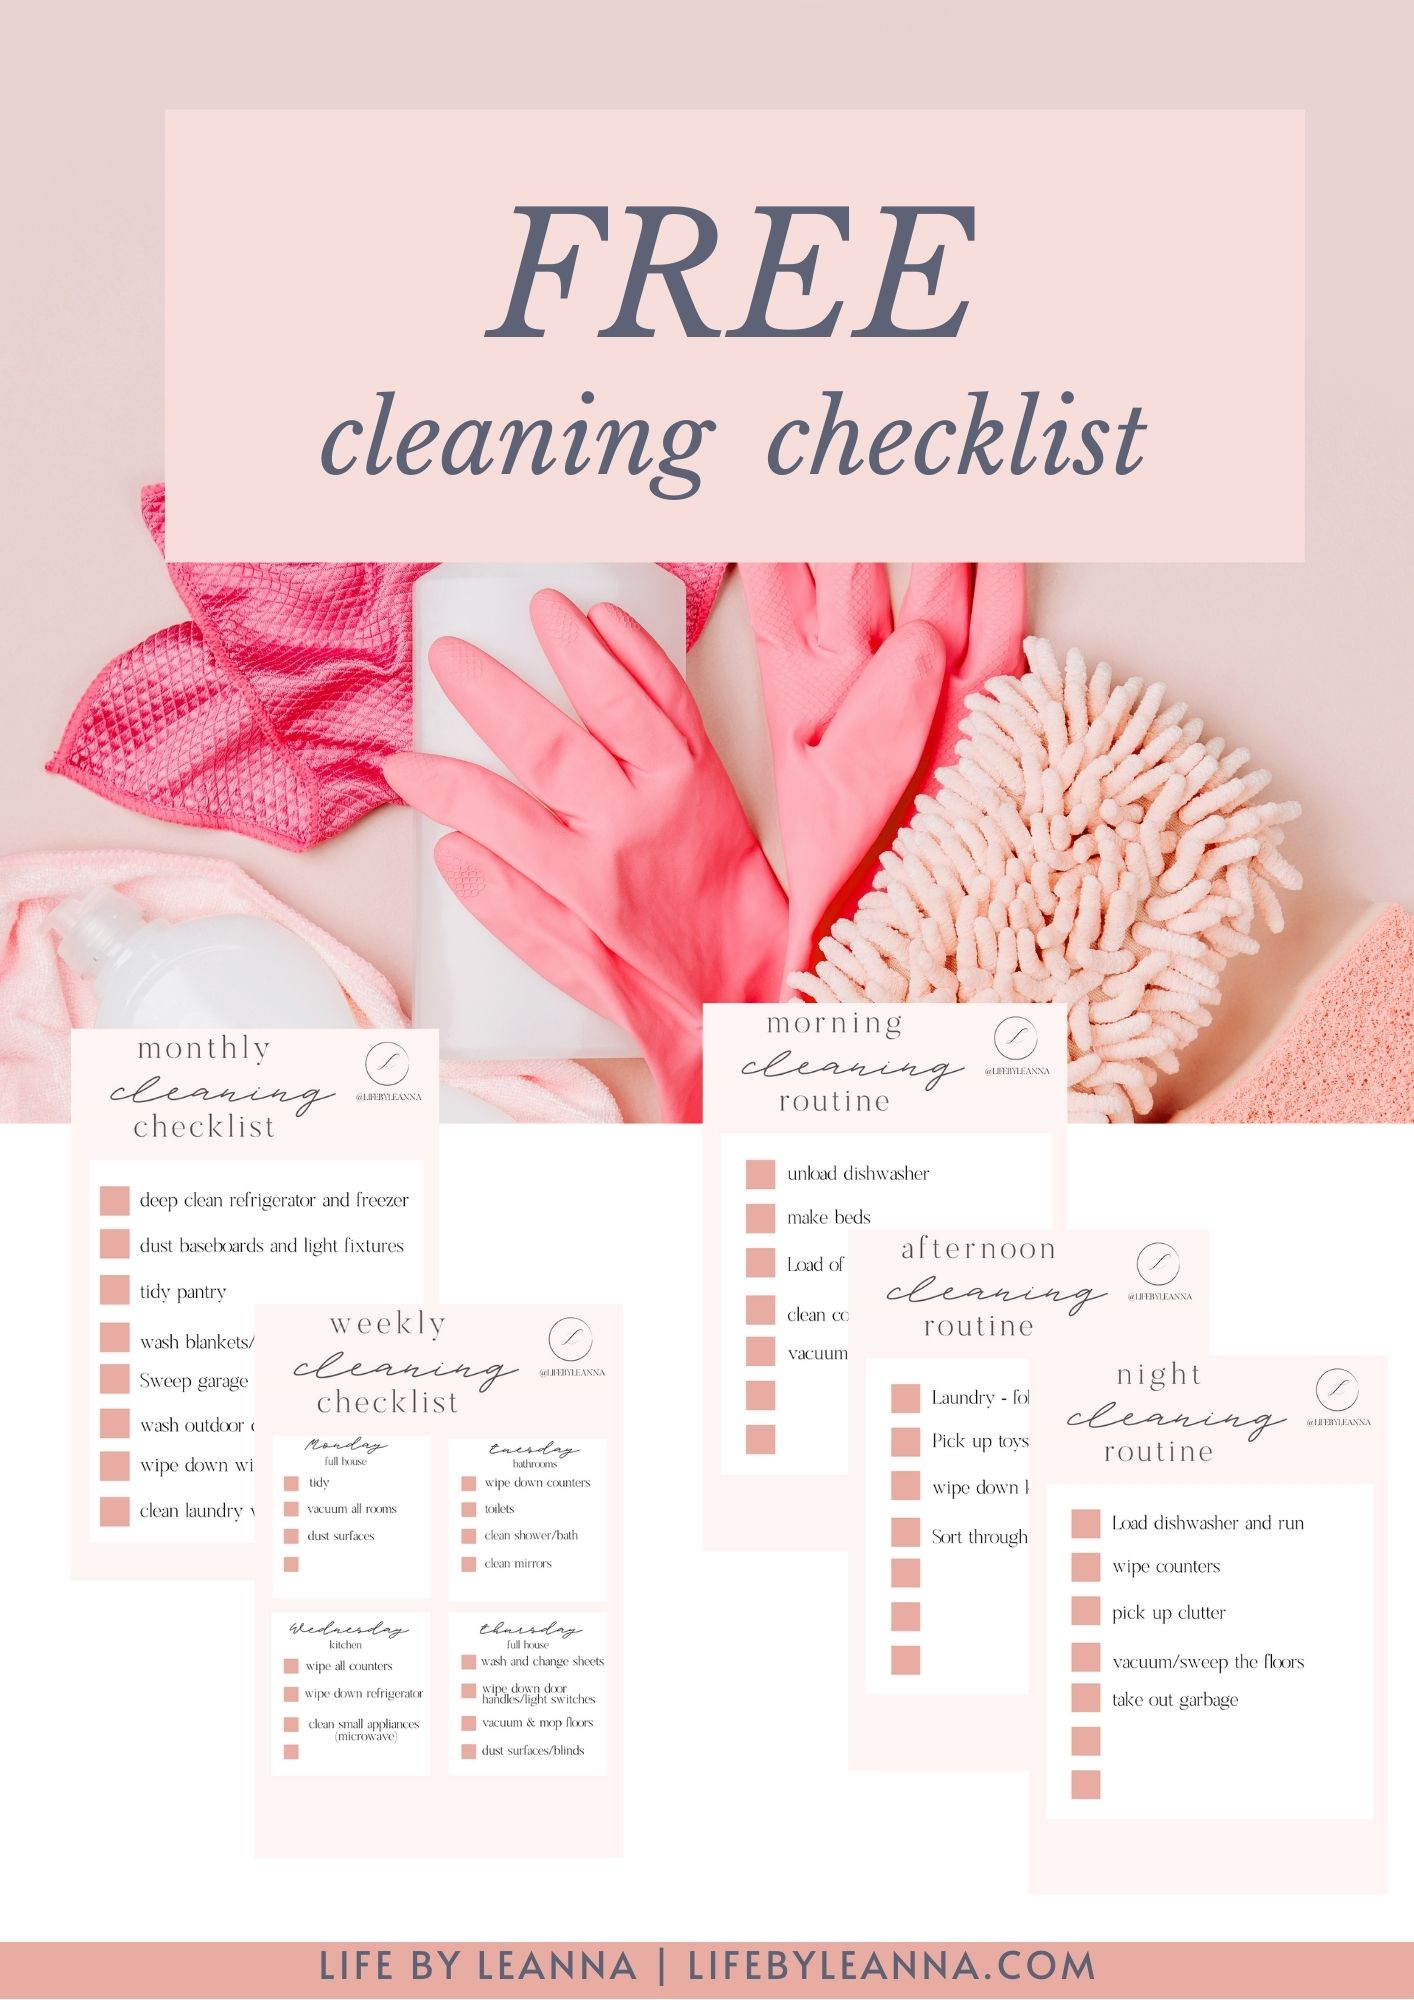 FREE CLEANING CHECKLIST